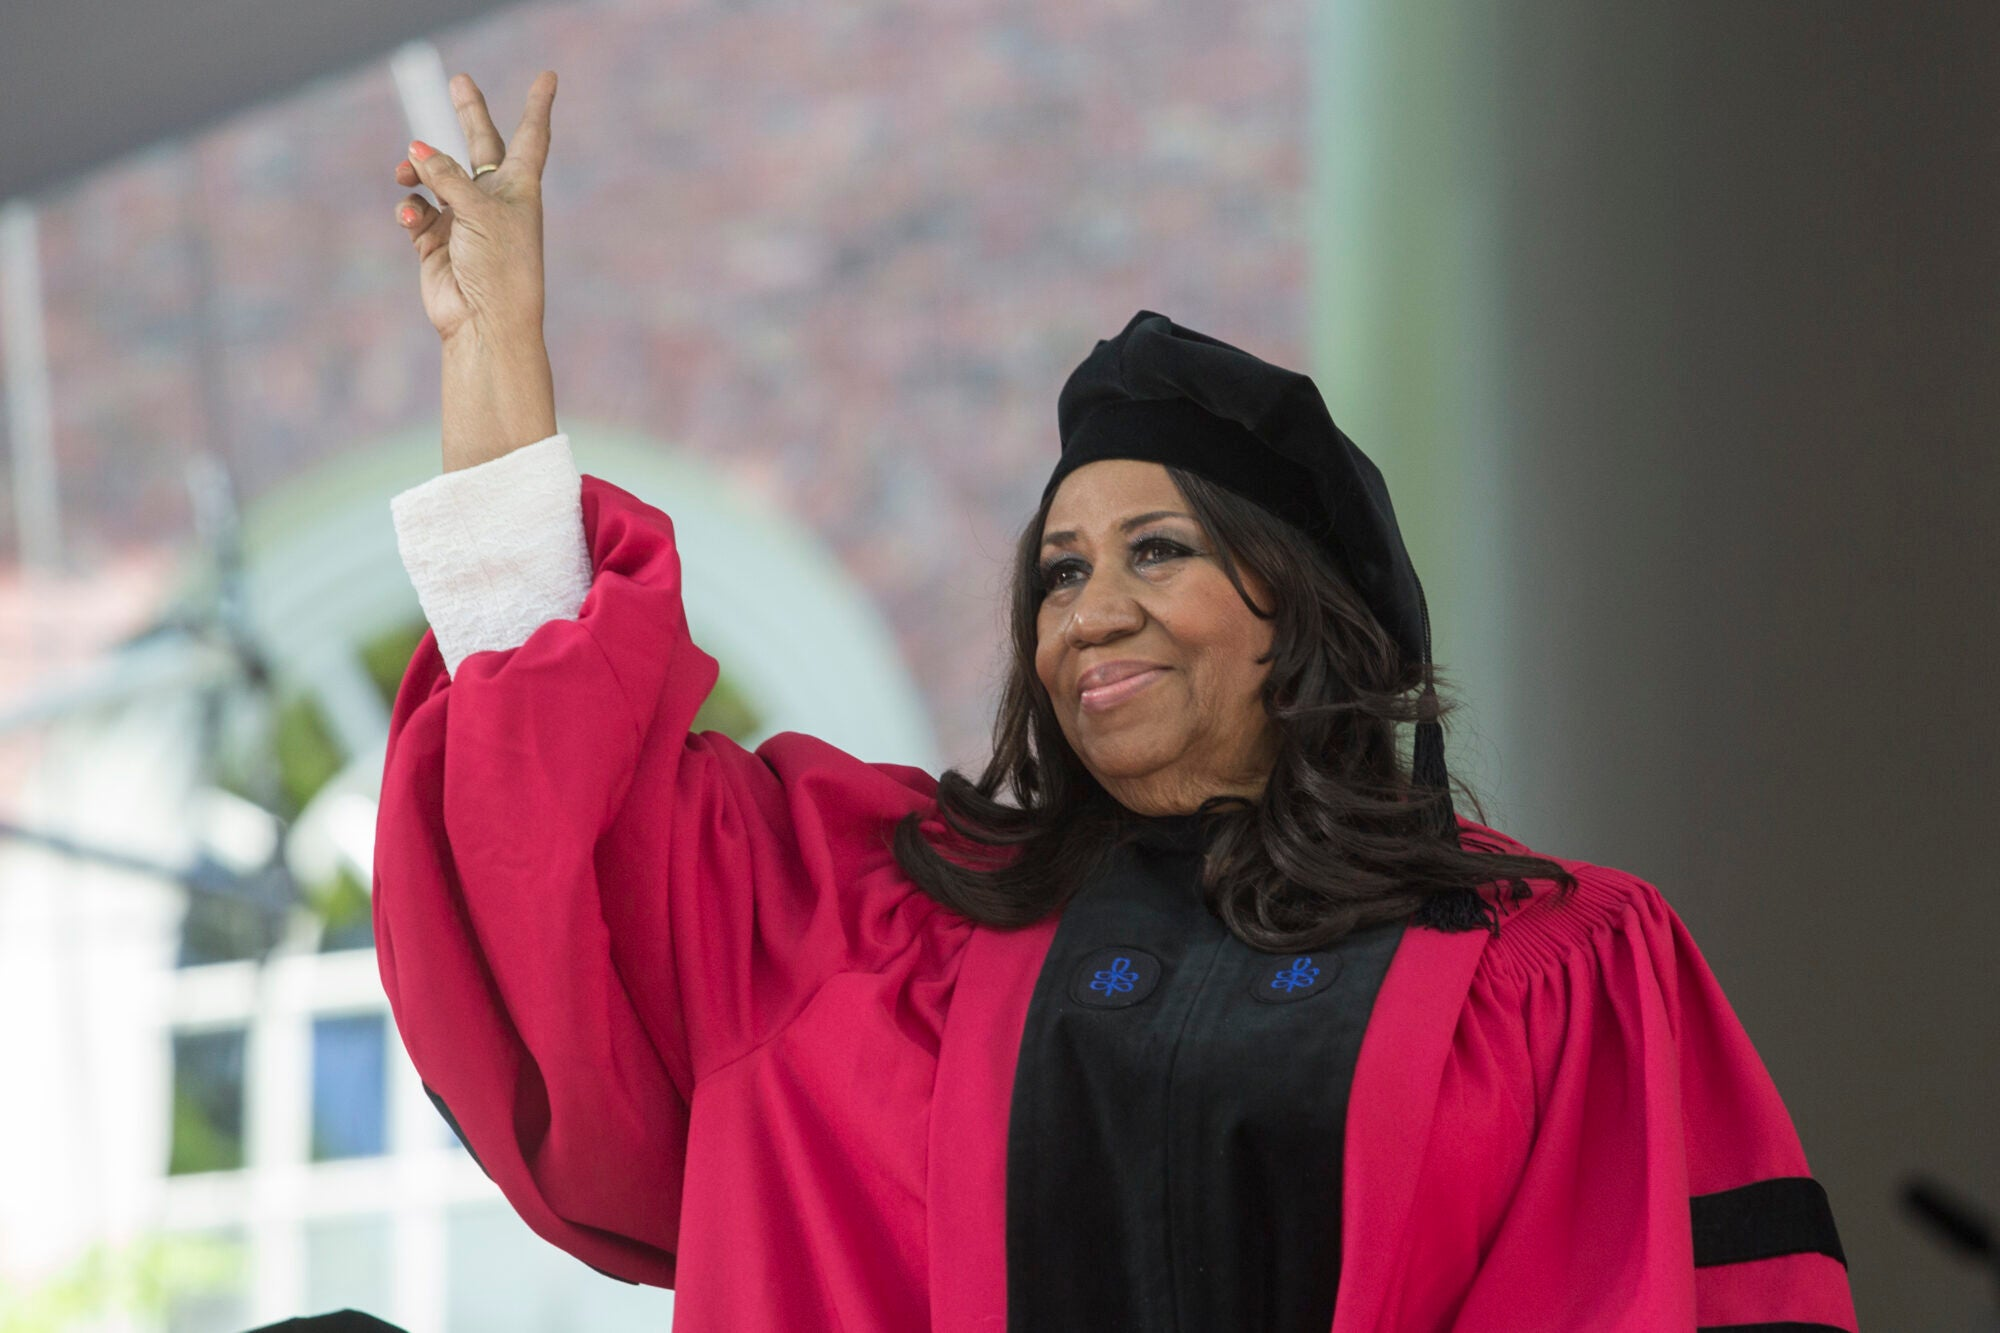 Aretha Franklin waving to the audience in her cap and gown.